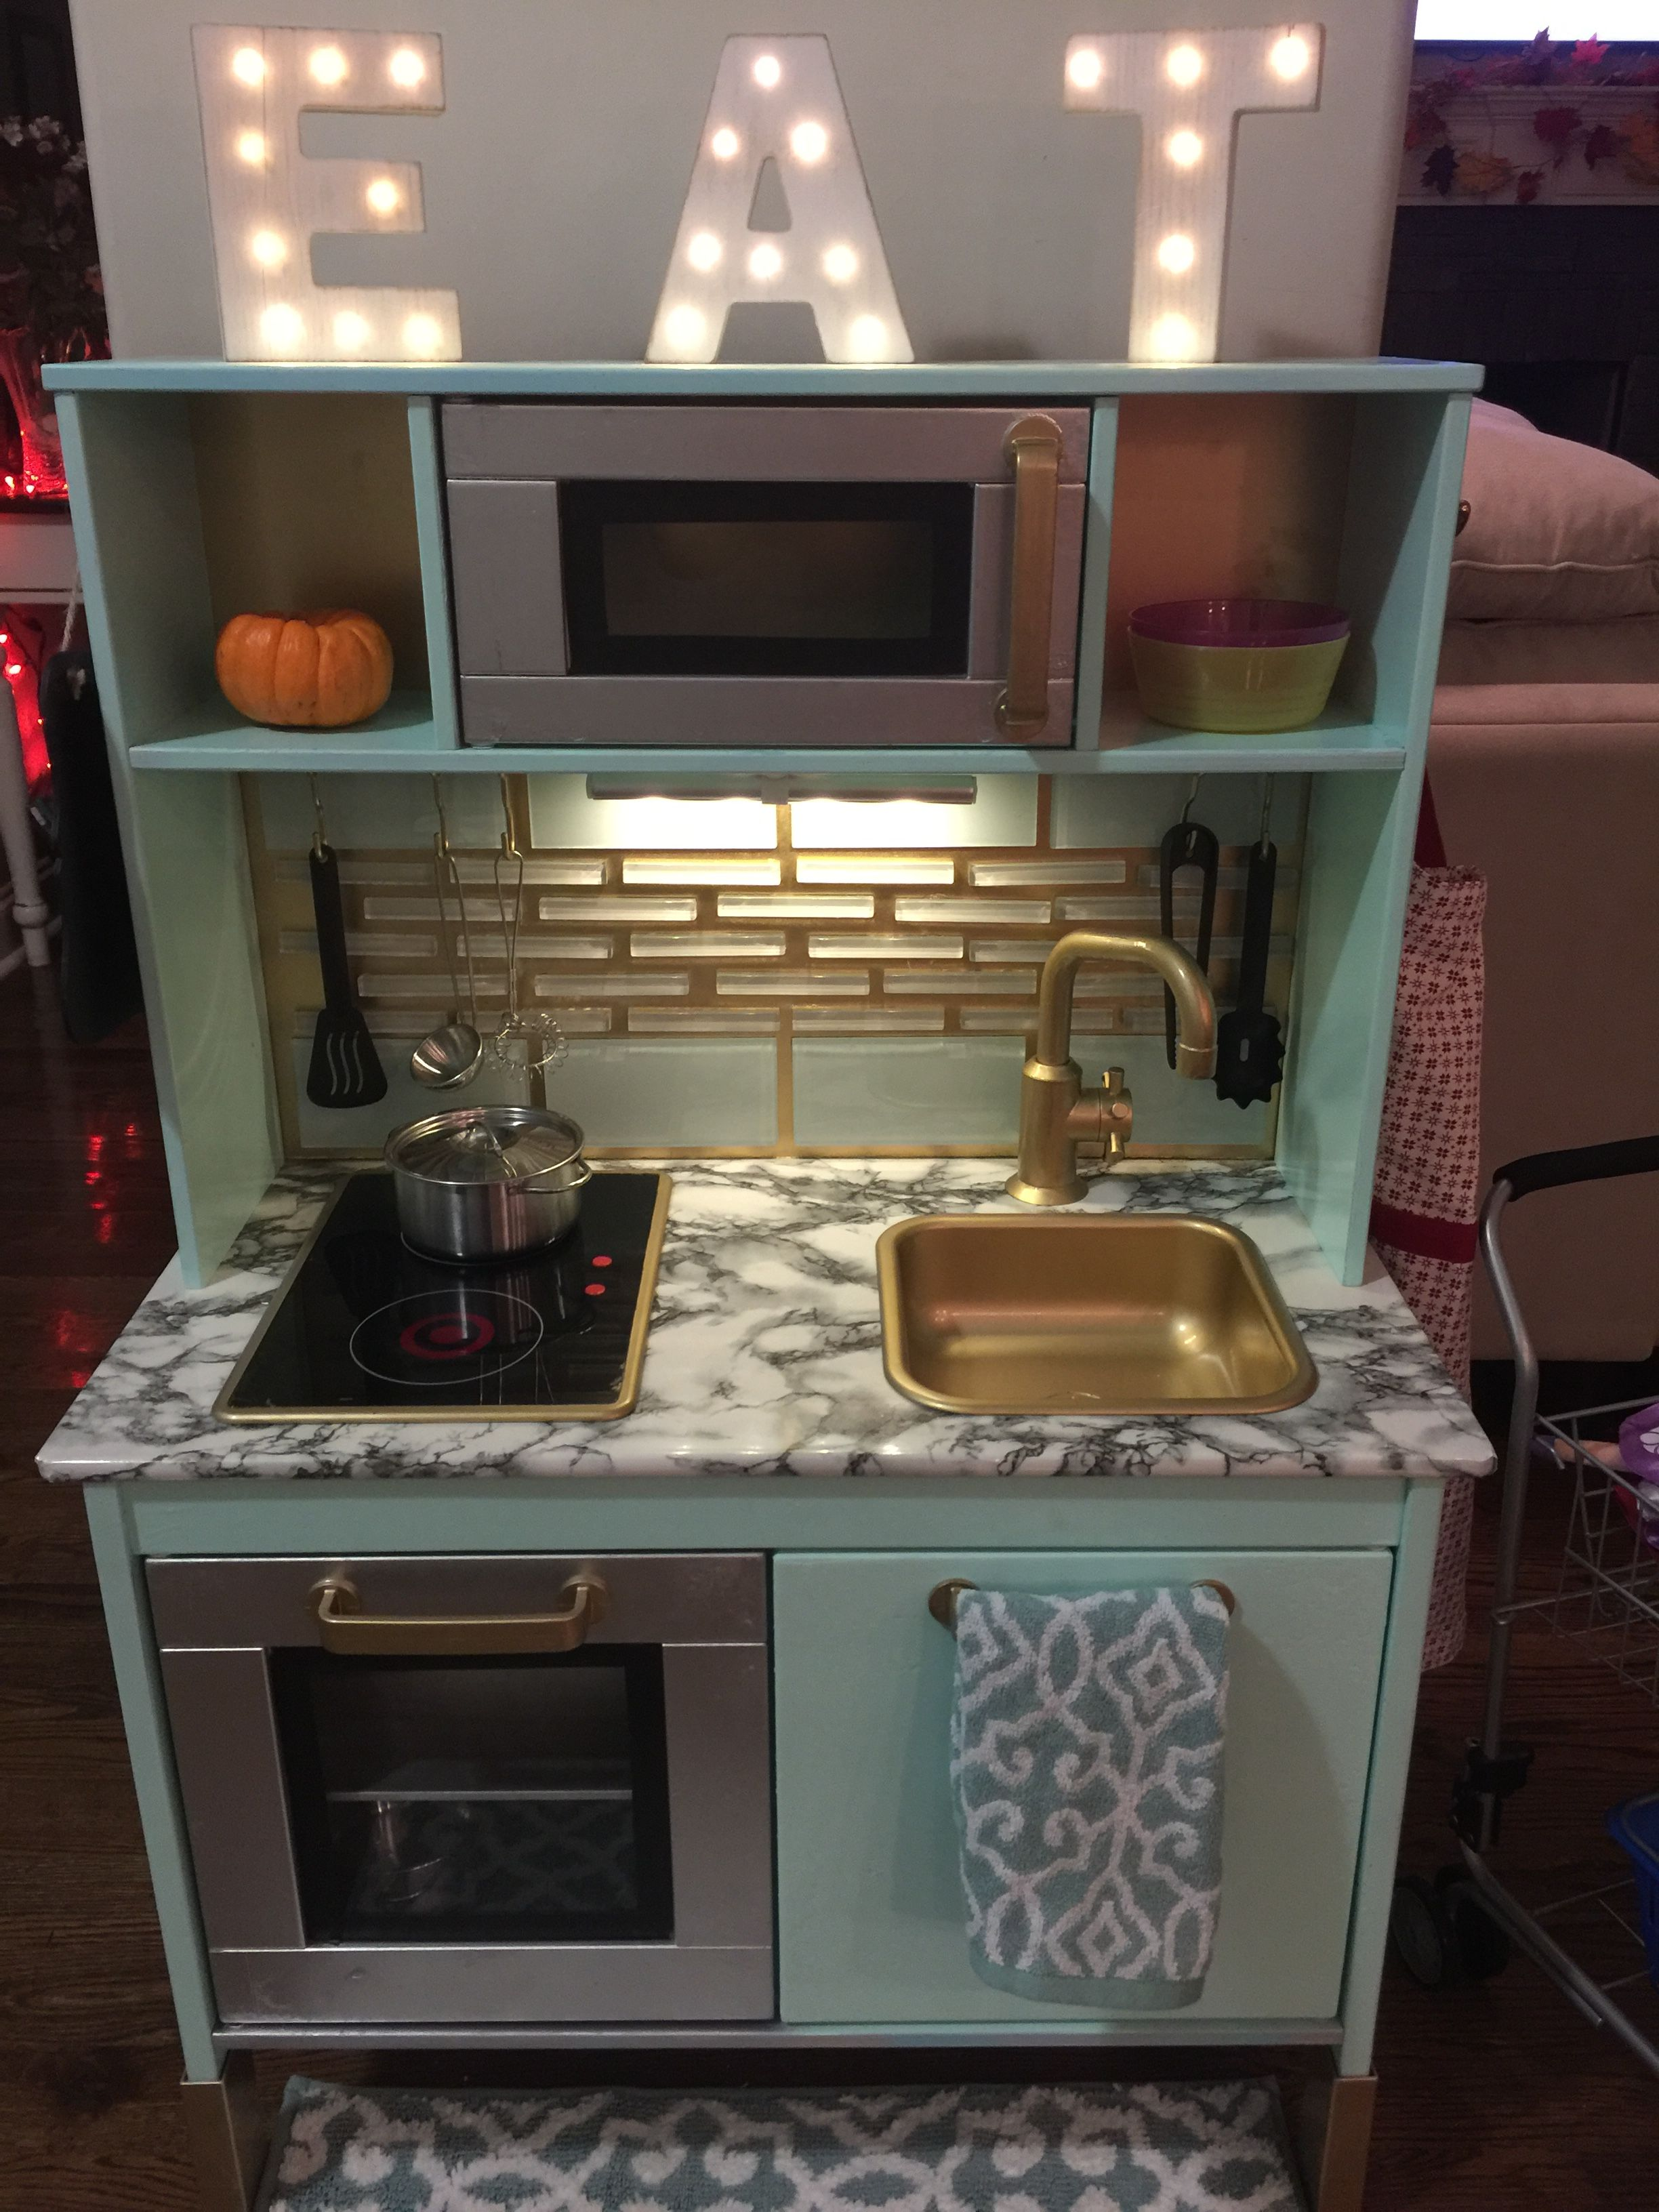 This kitchen set from IKEA turned out AMAZING. I painted